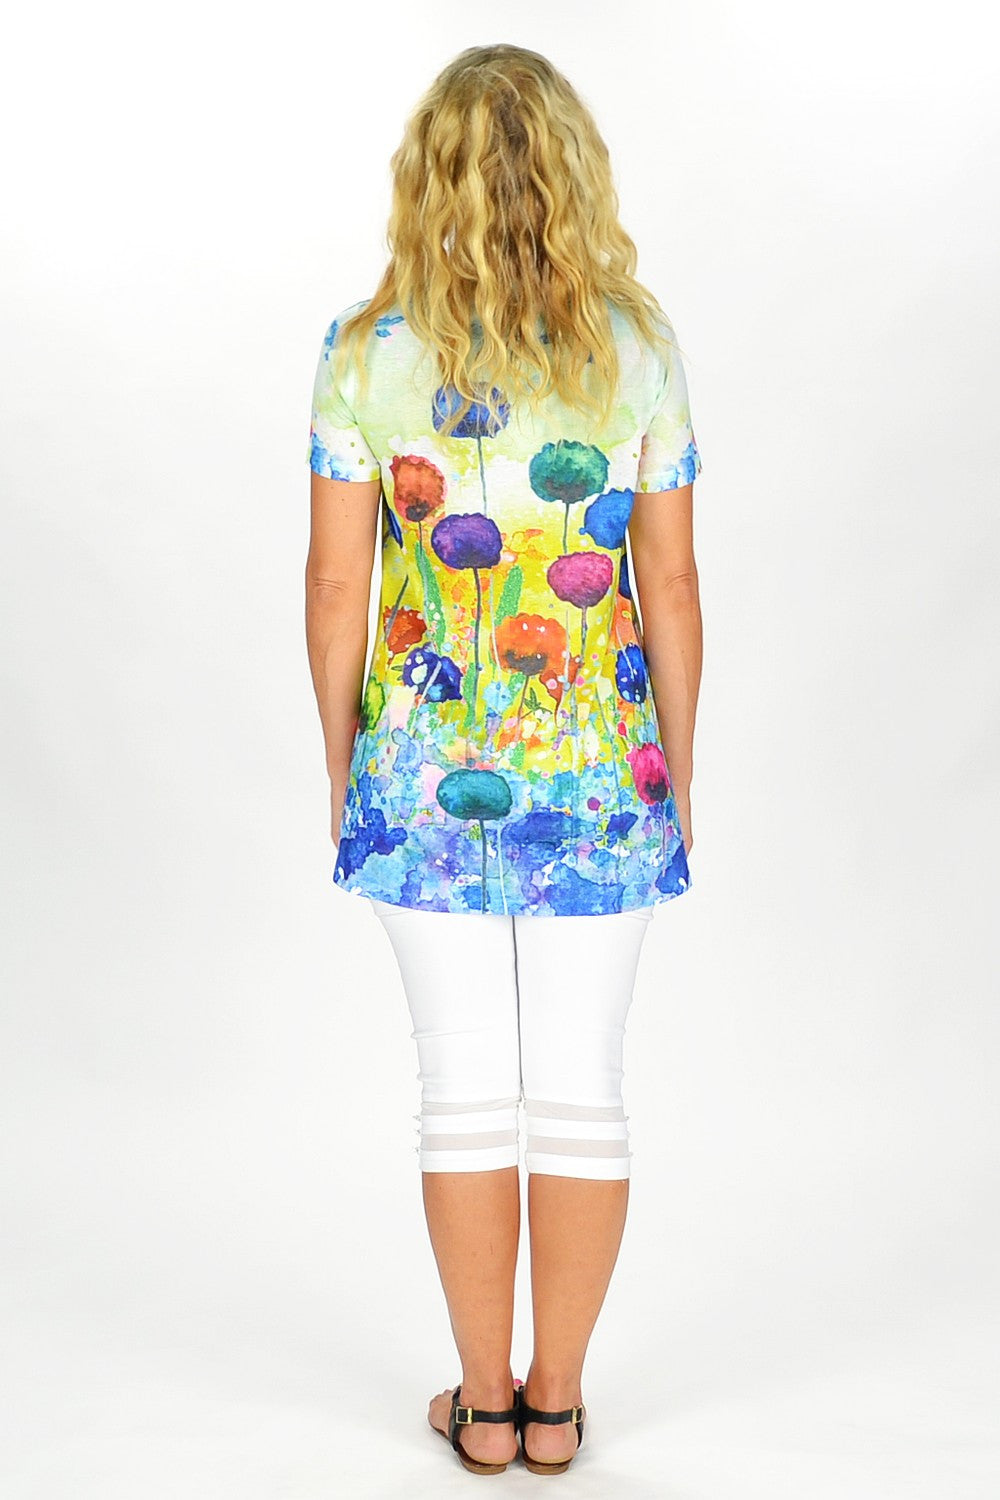 Penny Poppy Tunic - at I Love Tunics @ www.ilovetunics.com = Number One! Tunics Destination